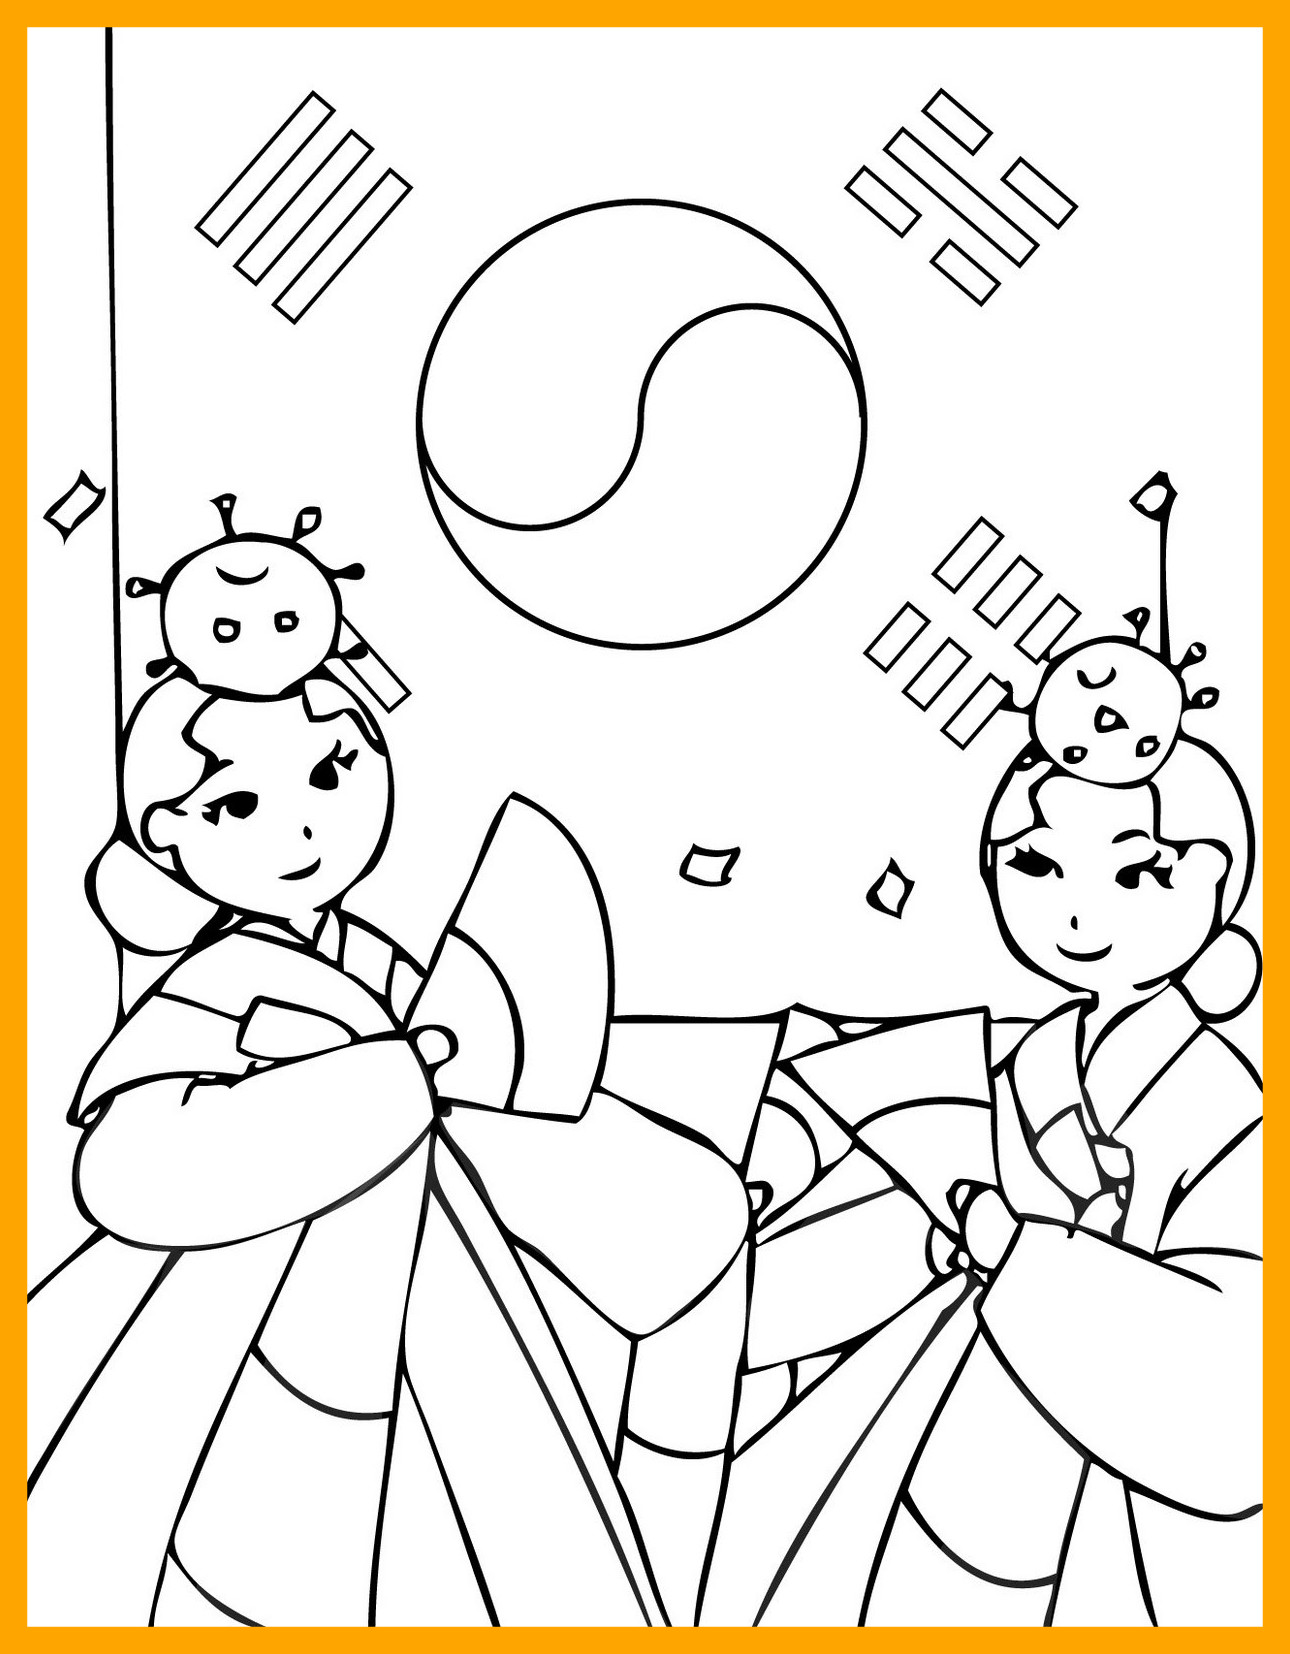 Korean Flag Coloring Page At Getcolorings